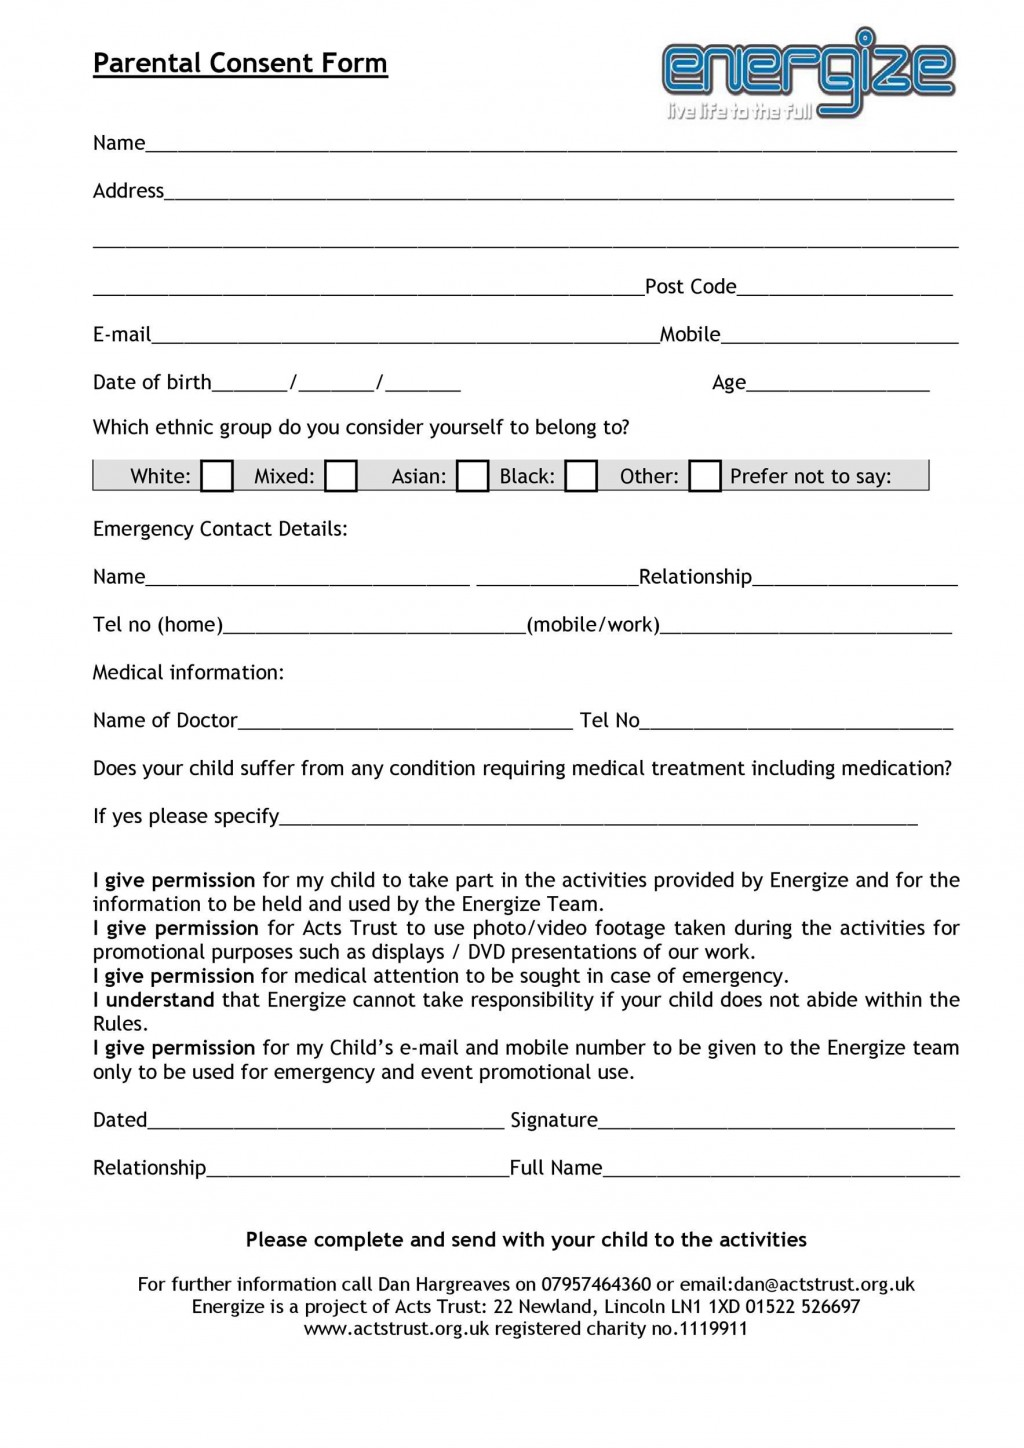 007 Wonderful Free Parental Medical Consent Form Template Design Large